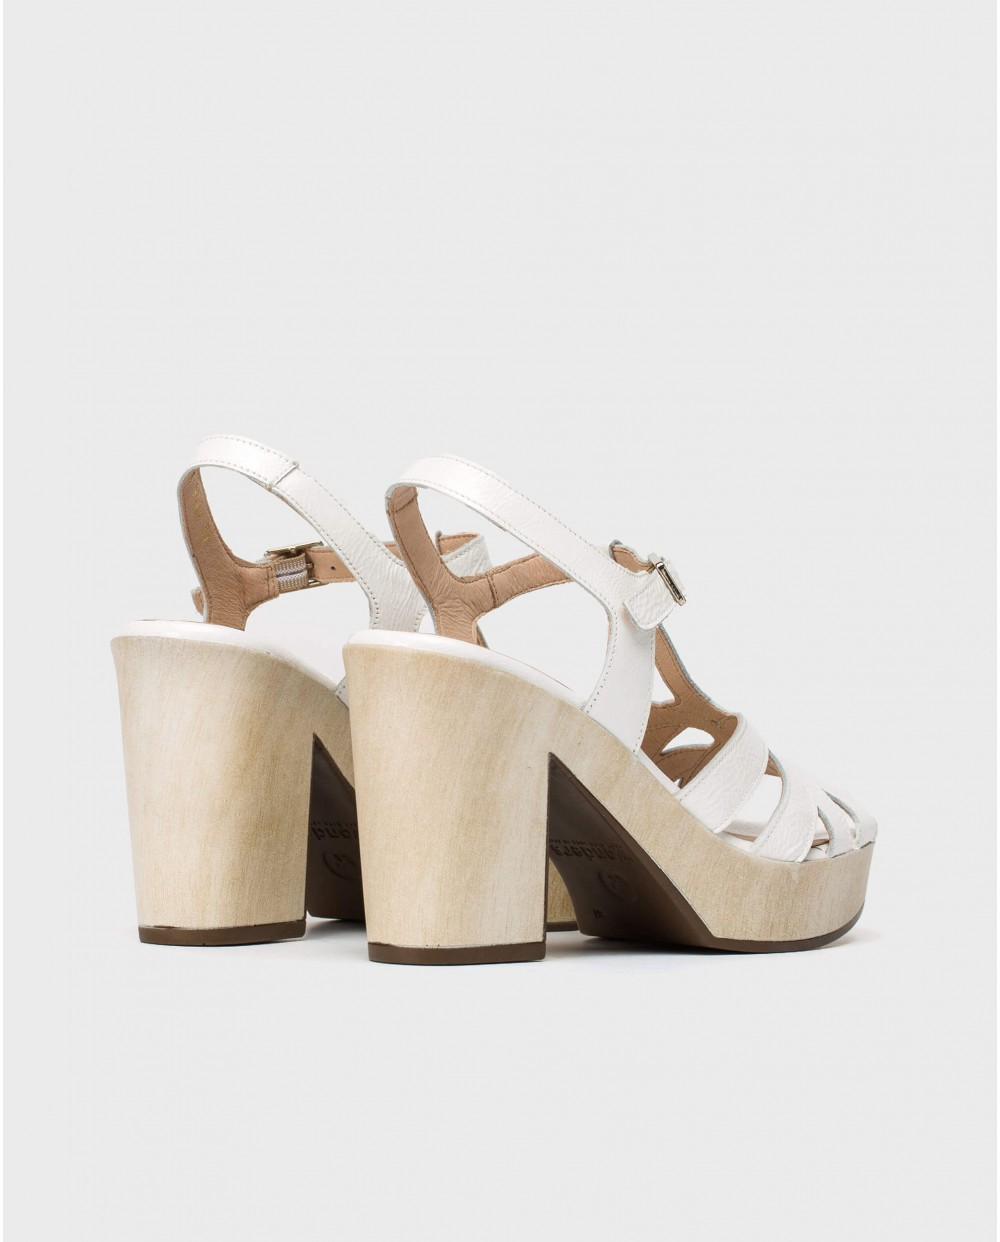 Wonders-Sandals-Leather sandal with intertwined straps